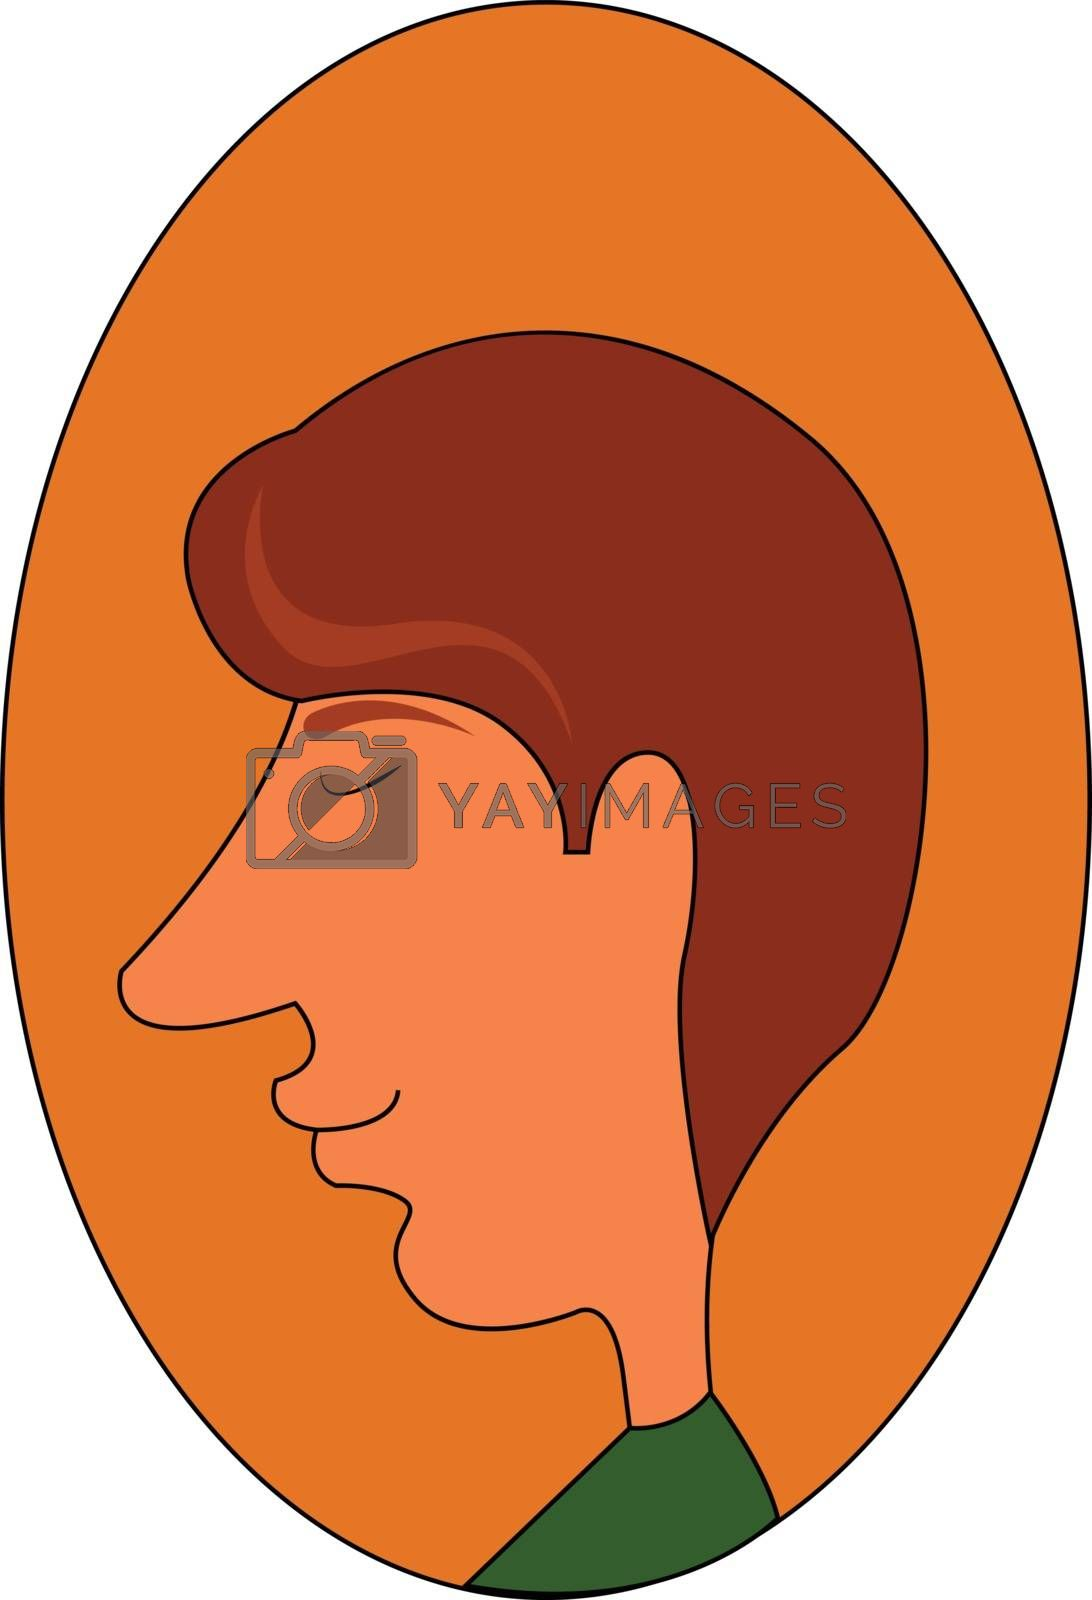 Royalty free image of Clipart of a man in a green shirt over oval-shaped yellow backgr by Morphart